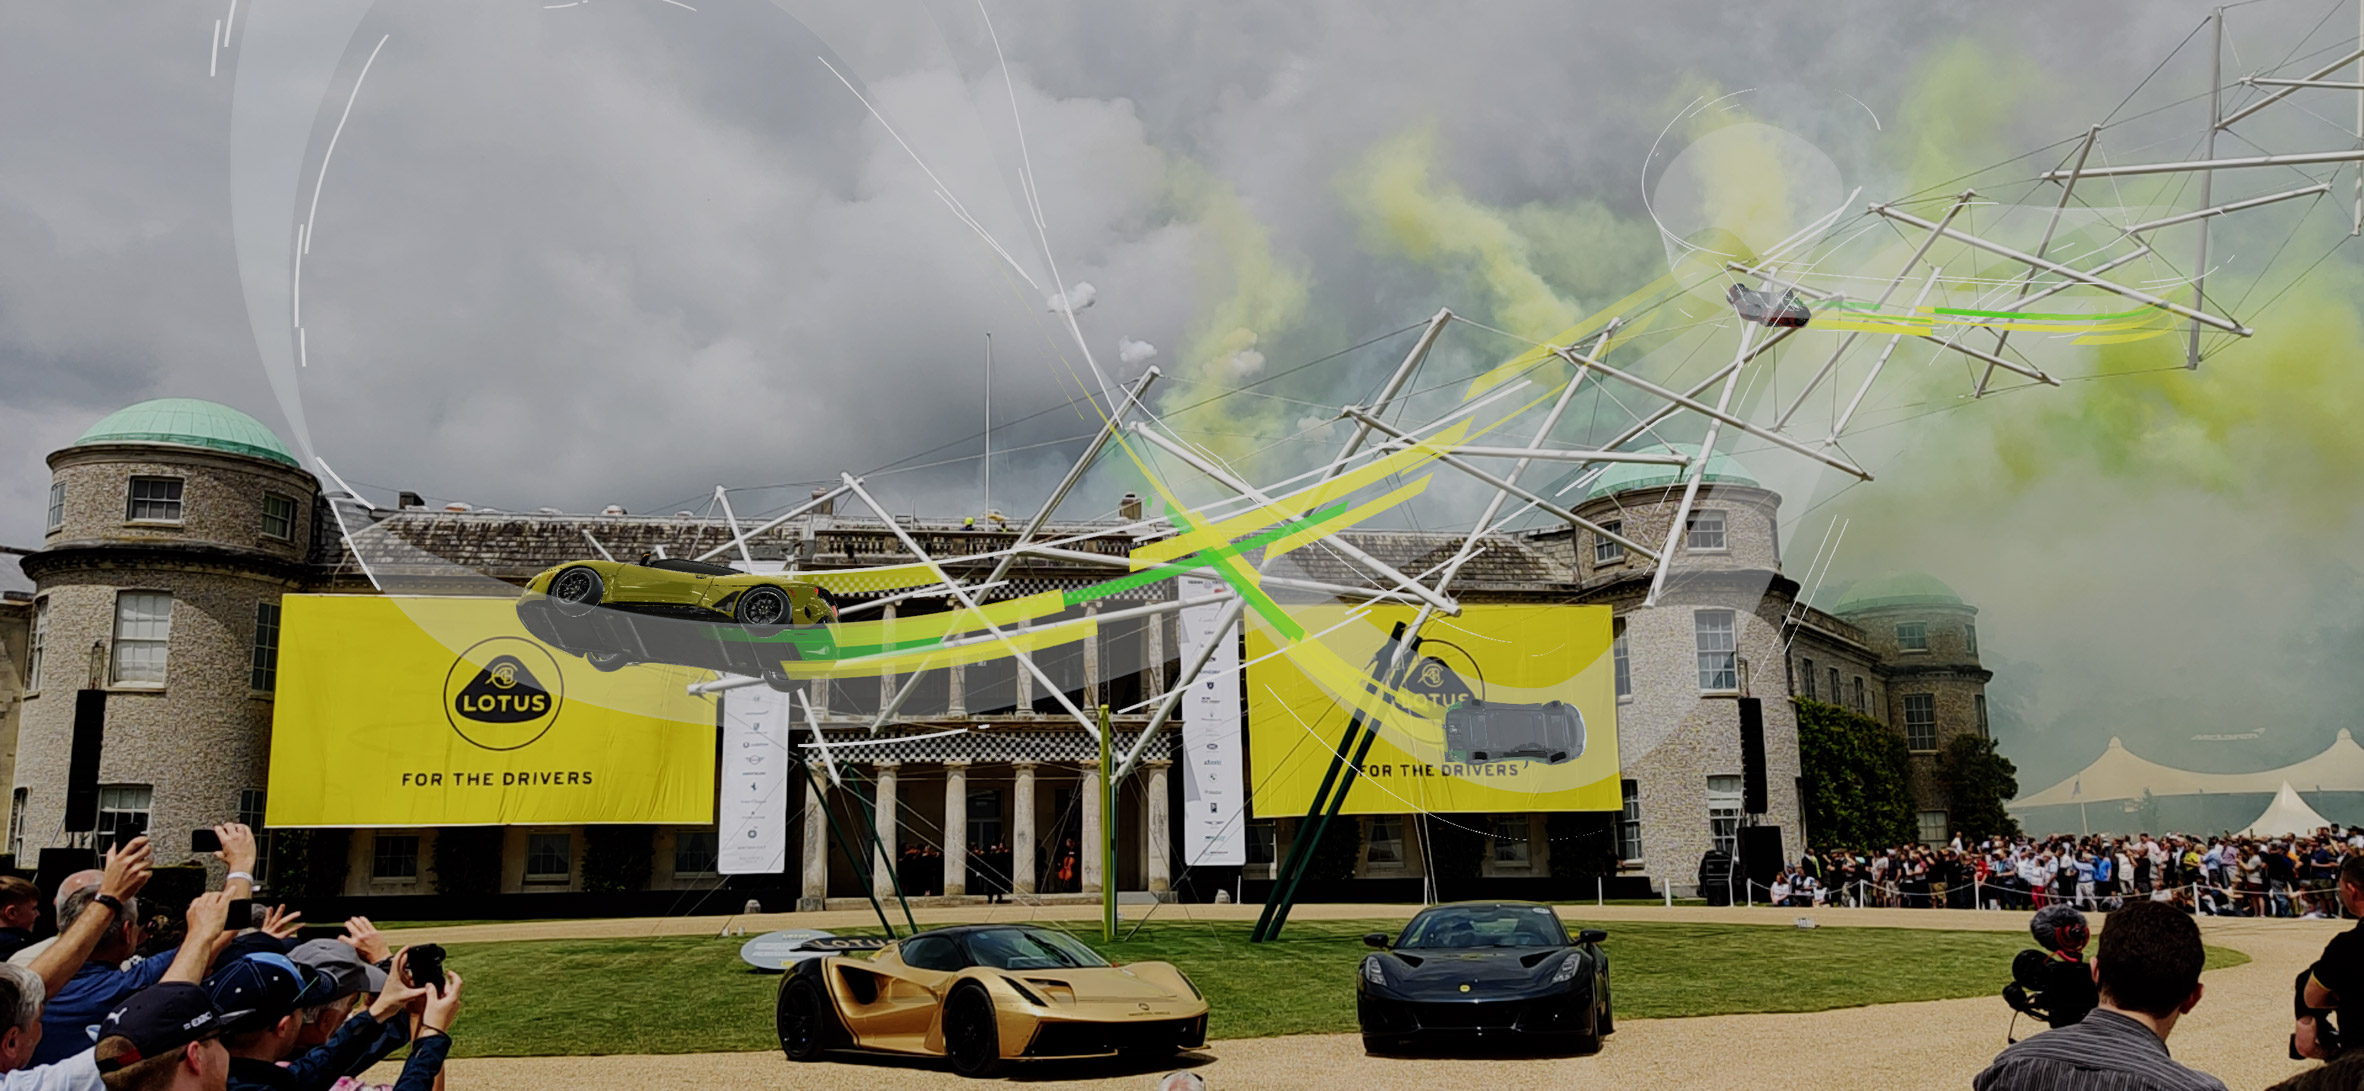 lotus aeroad structure at goodwood